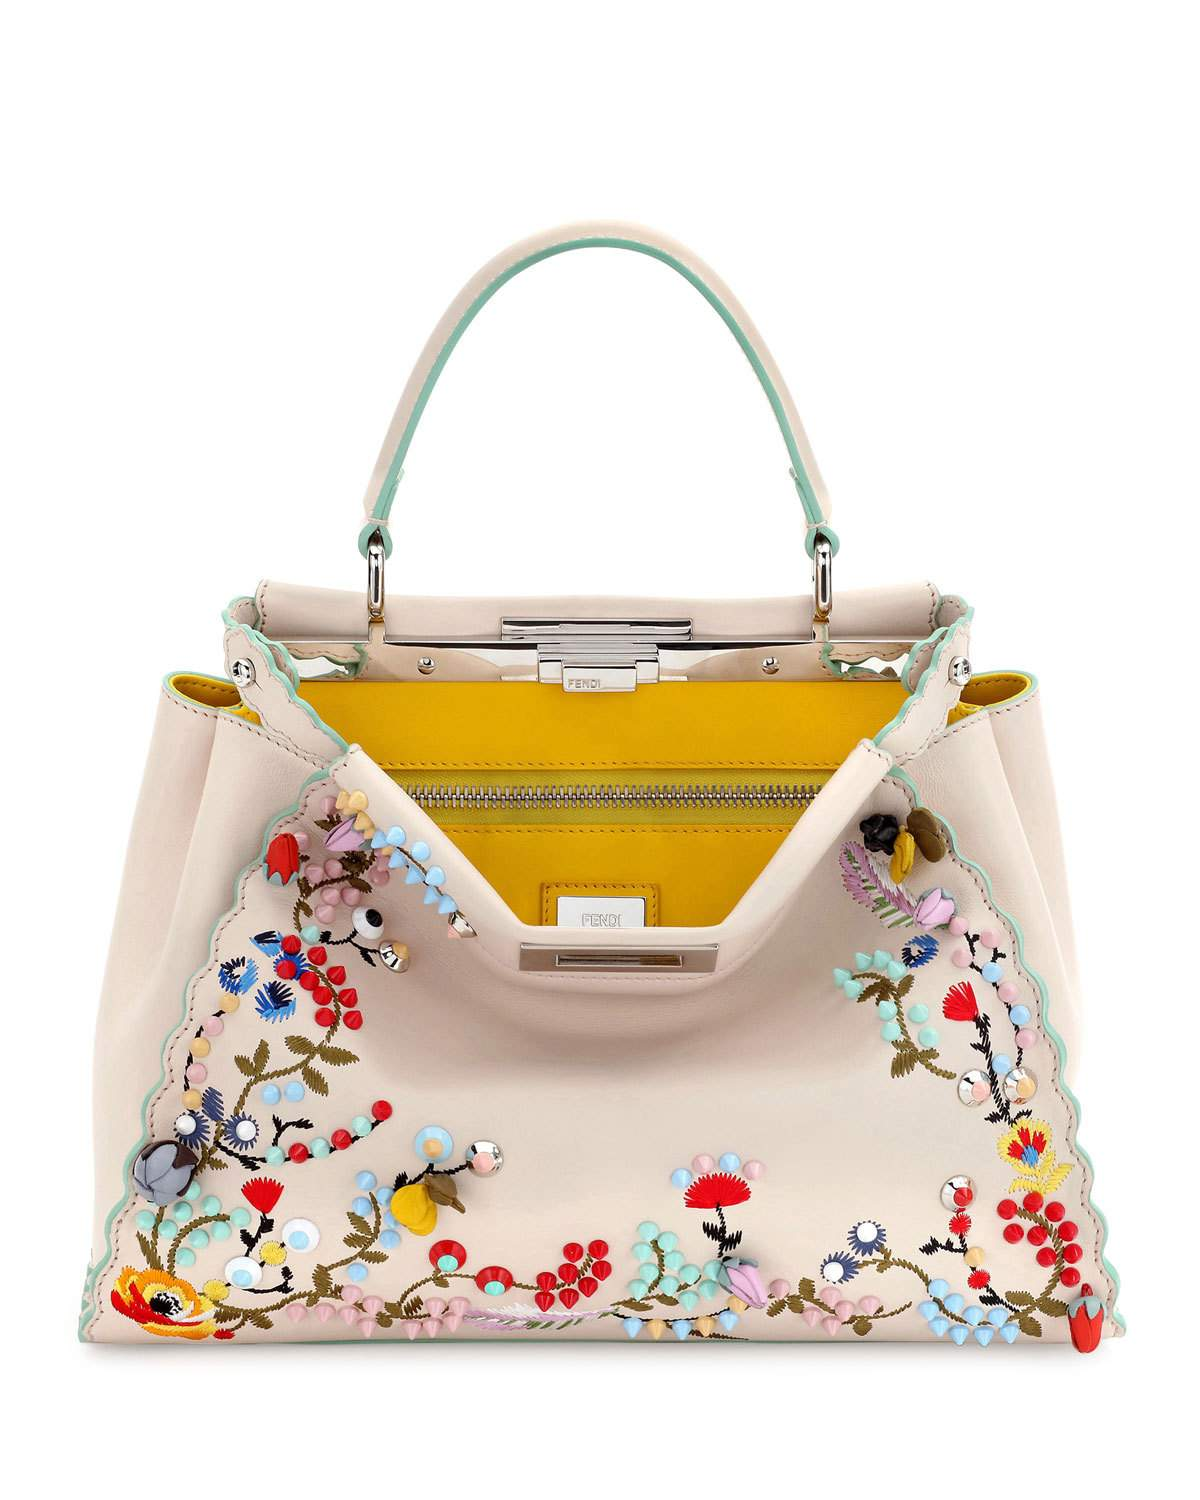 Fendi Resort 2017 Bag Collection Featuring Floral Bags  a4ea2832b5bc8